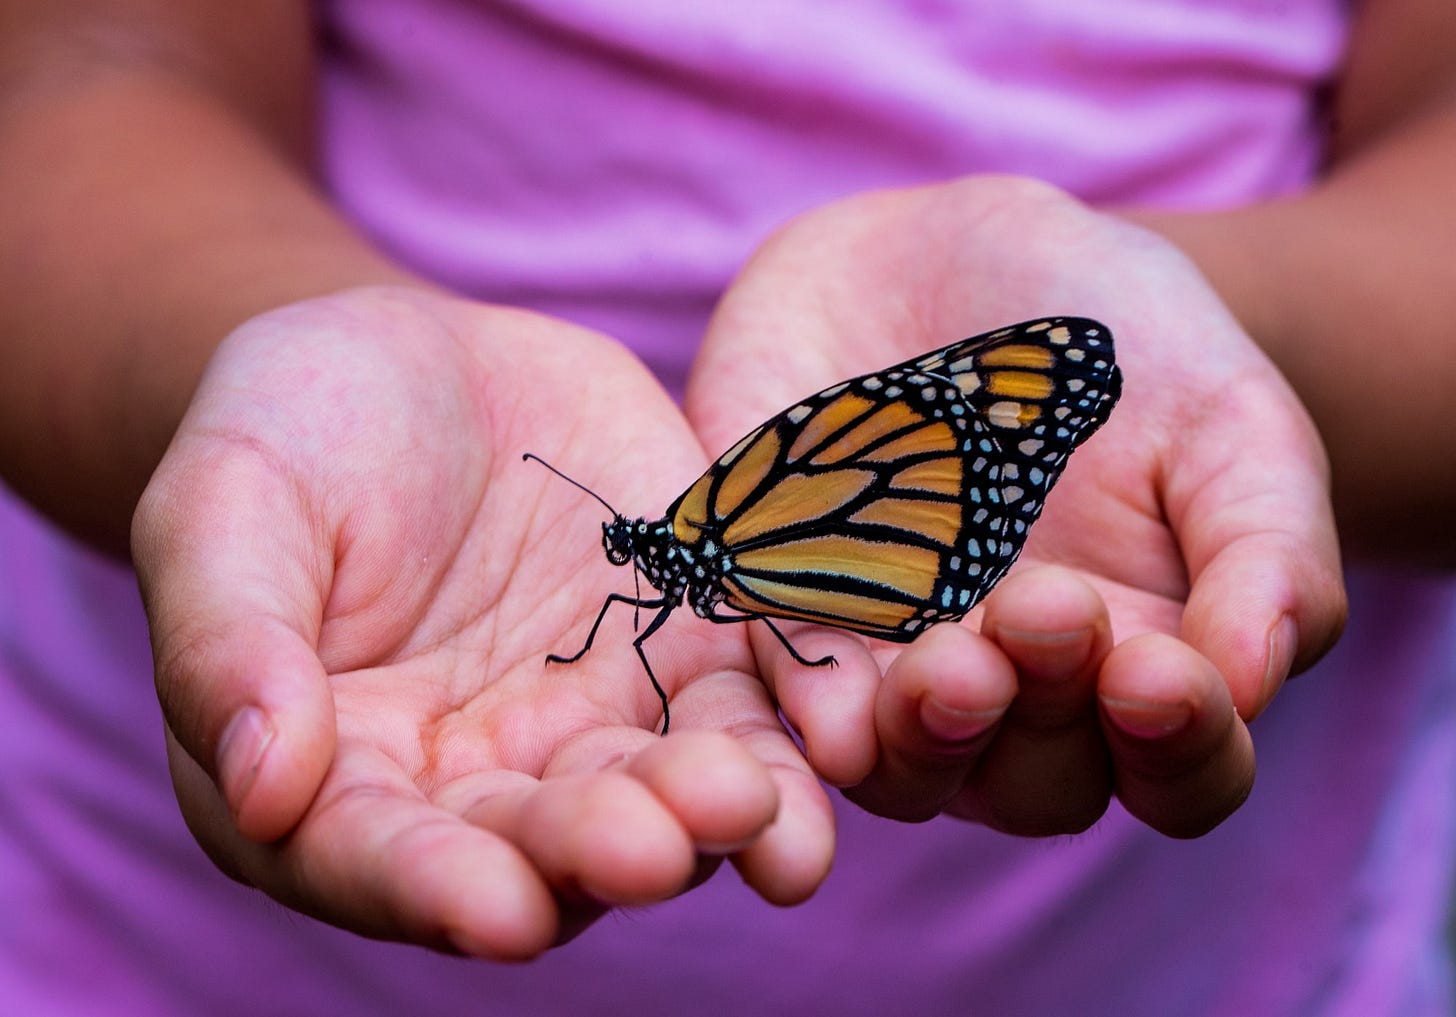 This child was delighted when a butterfly landed in her hands.